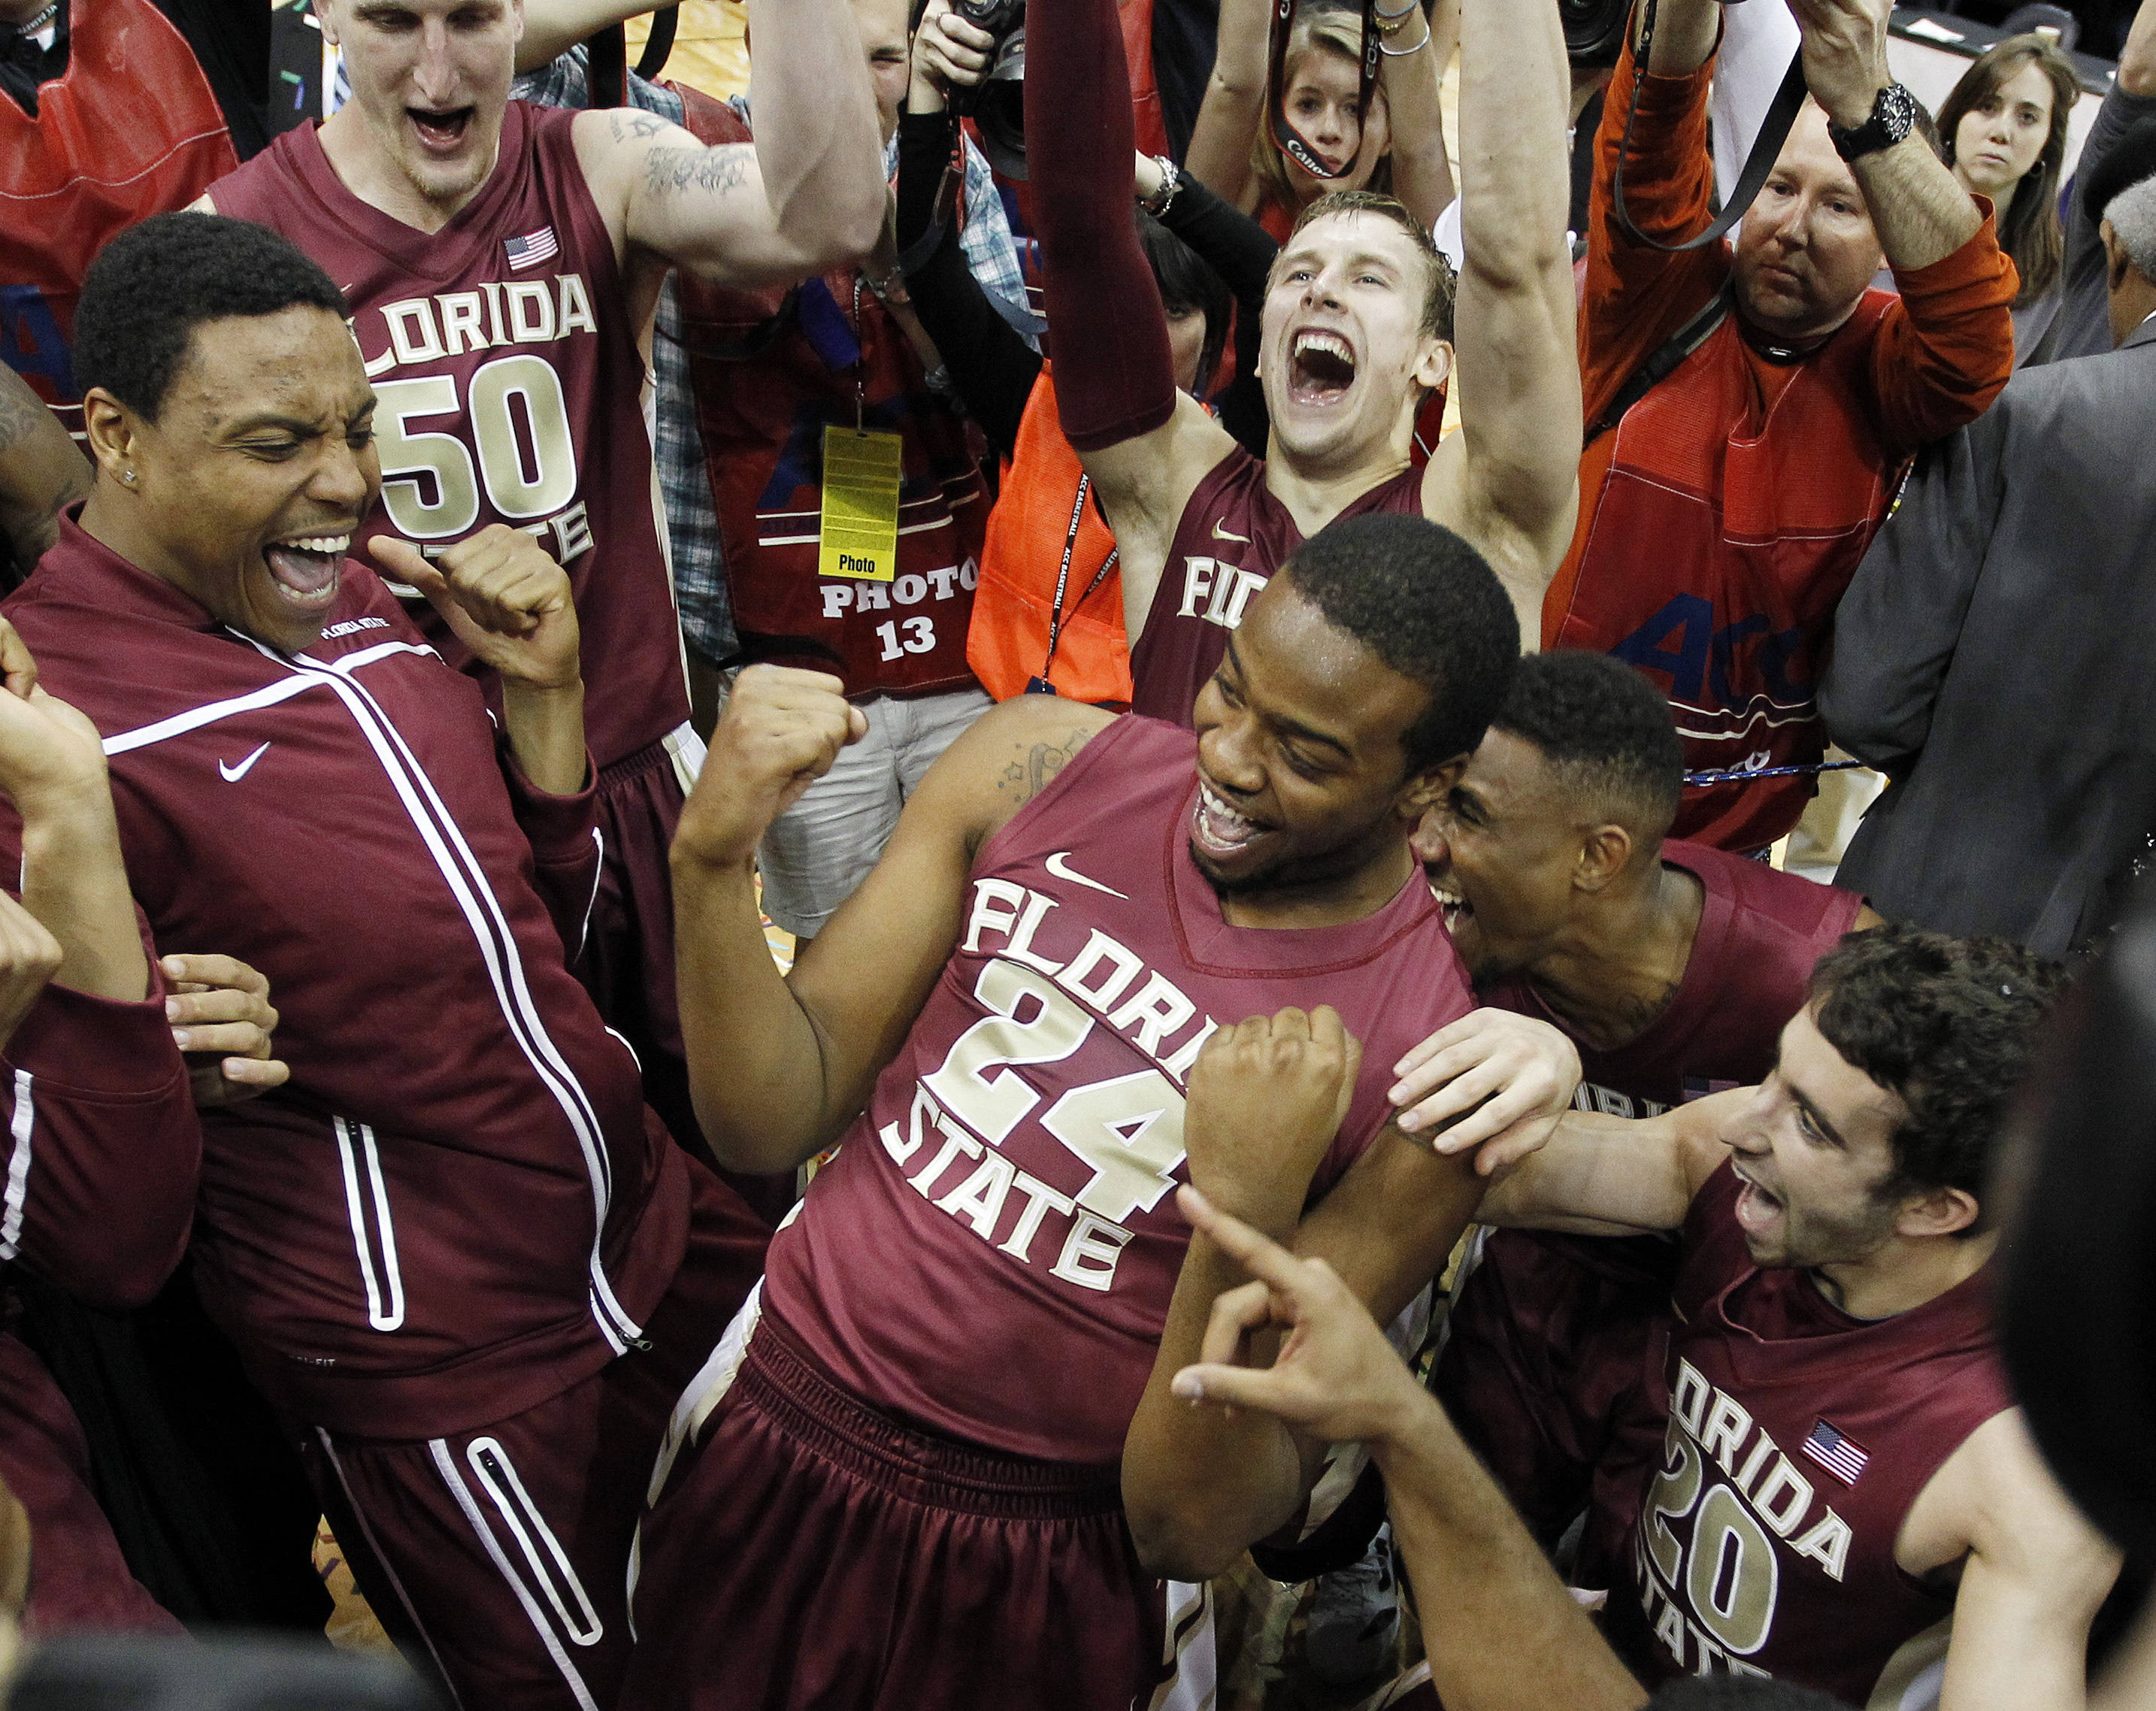 Antwan Space leads his teammates in a cheer. (AP Photo/John Bazemore)